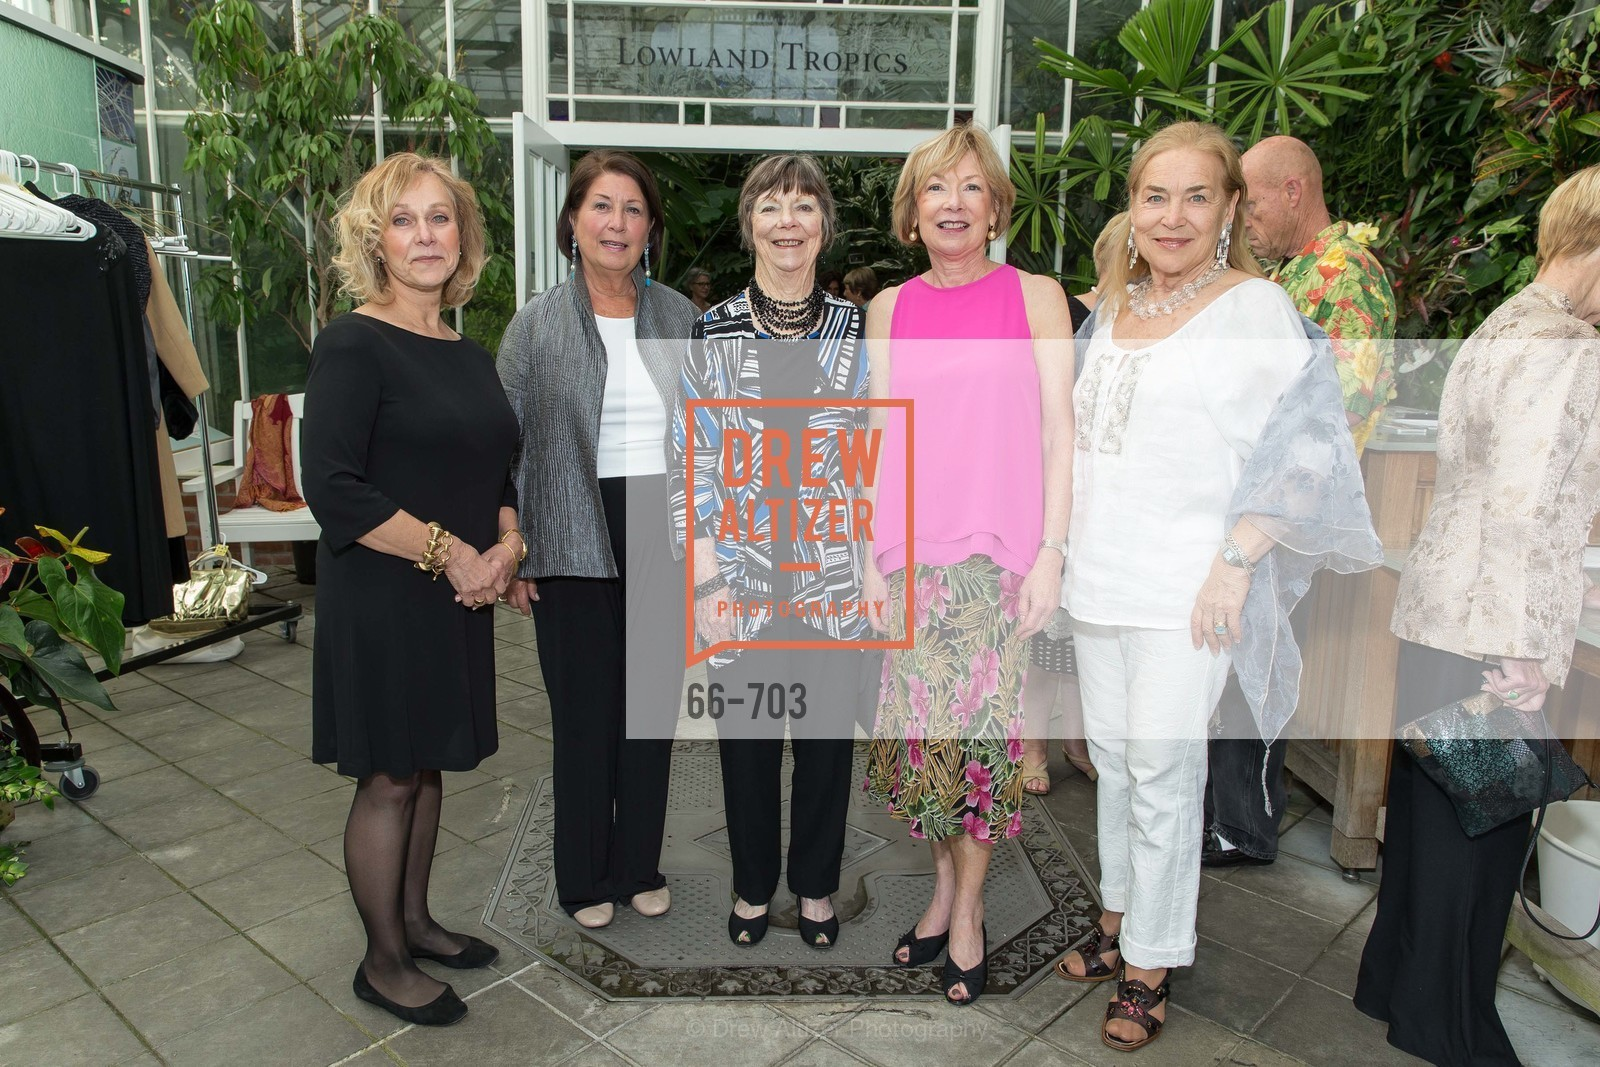 Sharon Collier, Terry Dolan, Donna Ellis, Jane Scurich, Natasha Hopkinson, CONSERVATORY OF FLOWERS Presents